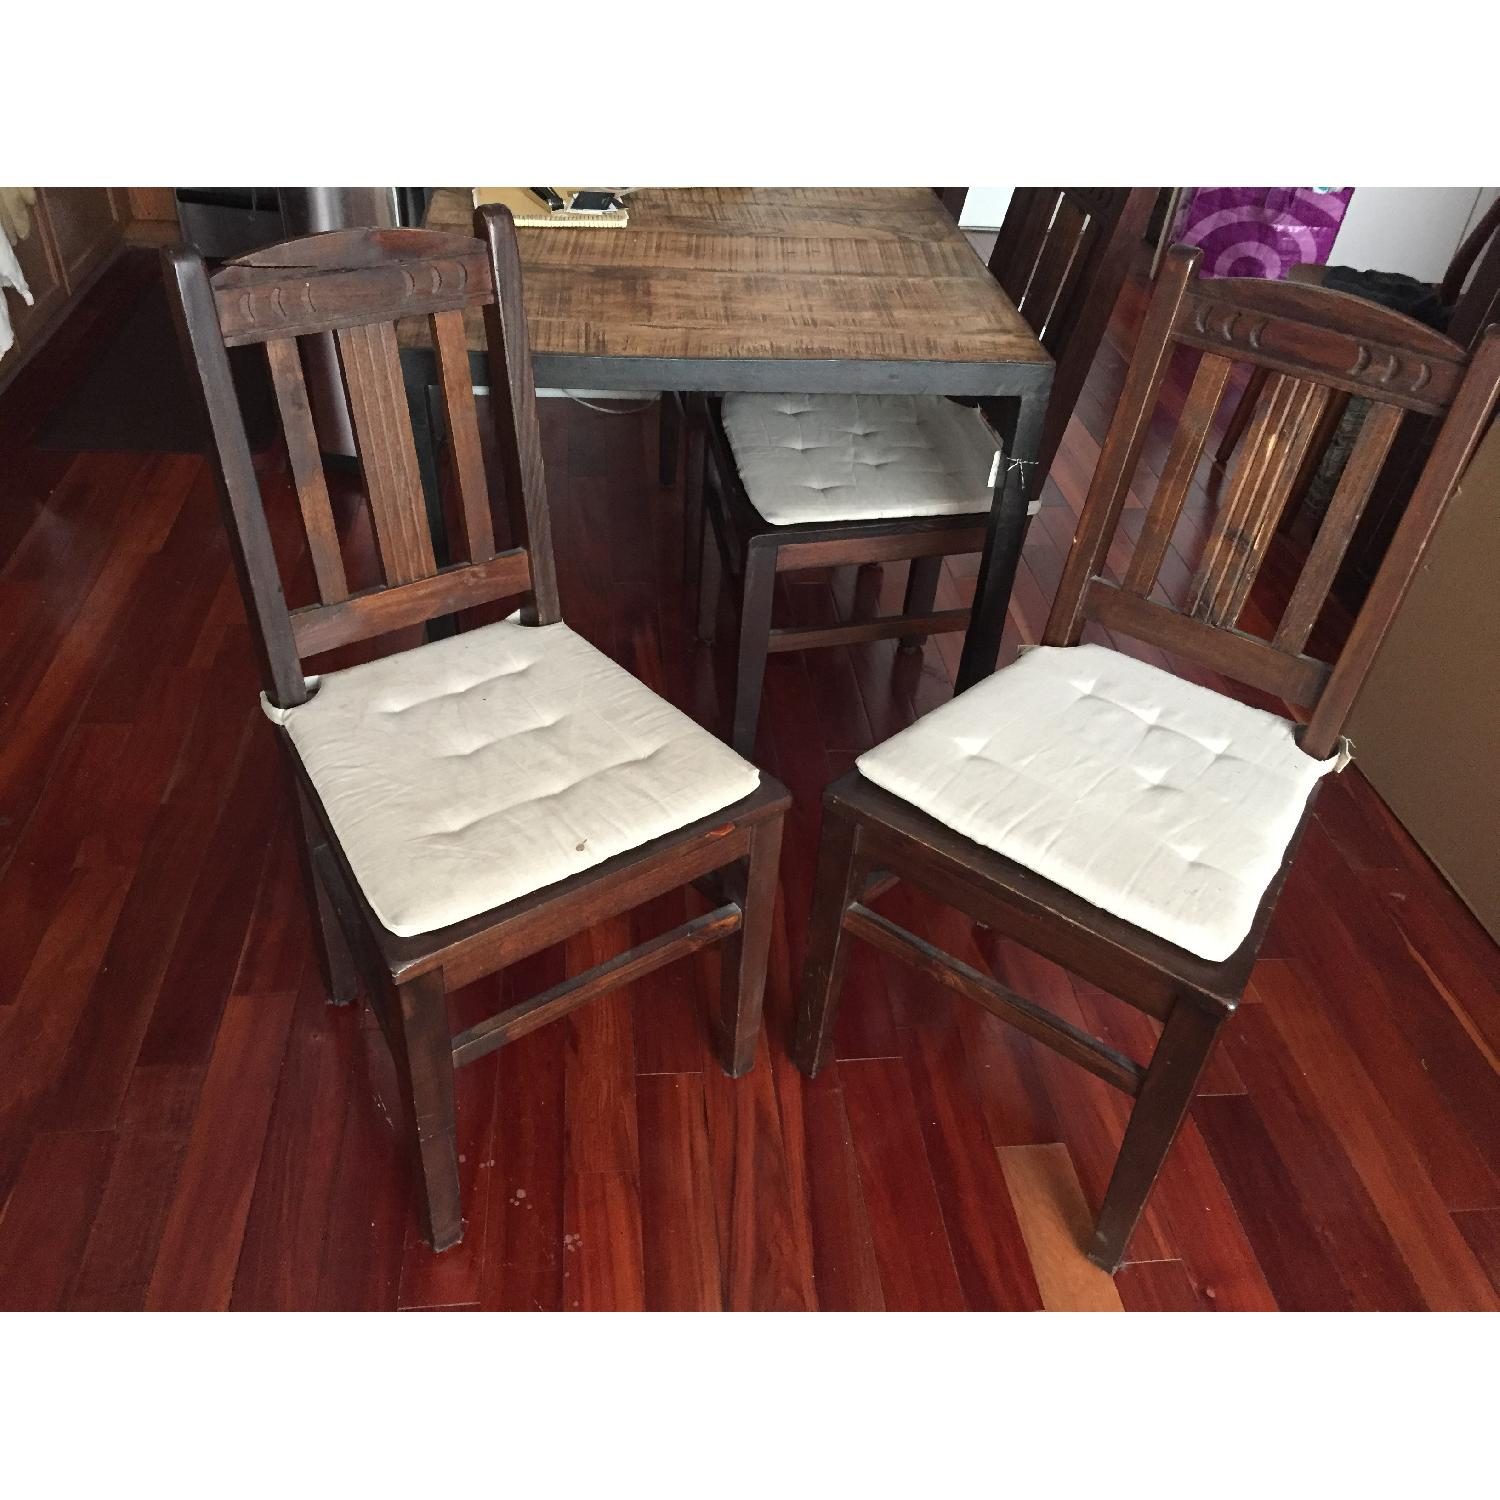 Dark Stained Wood Farm Table w/ 4 Chairs - image-1